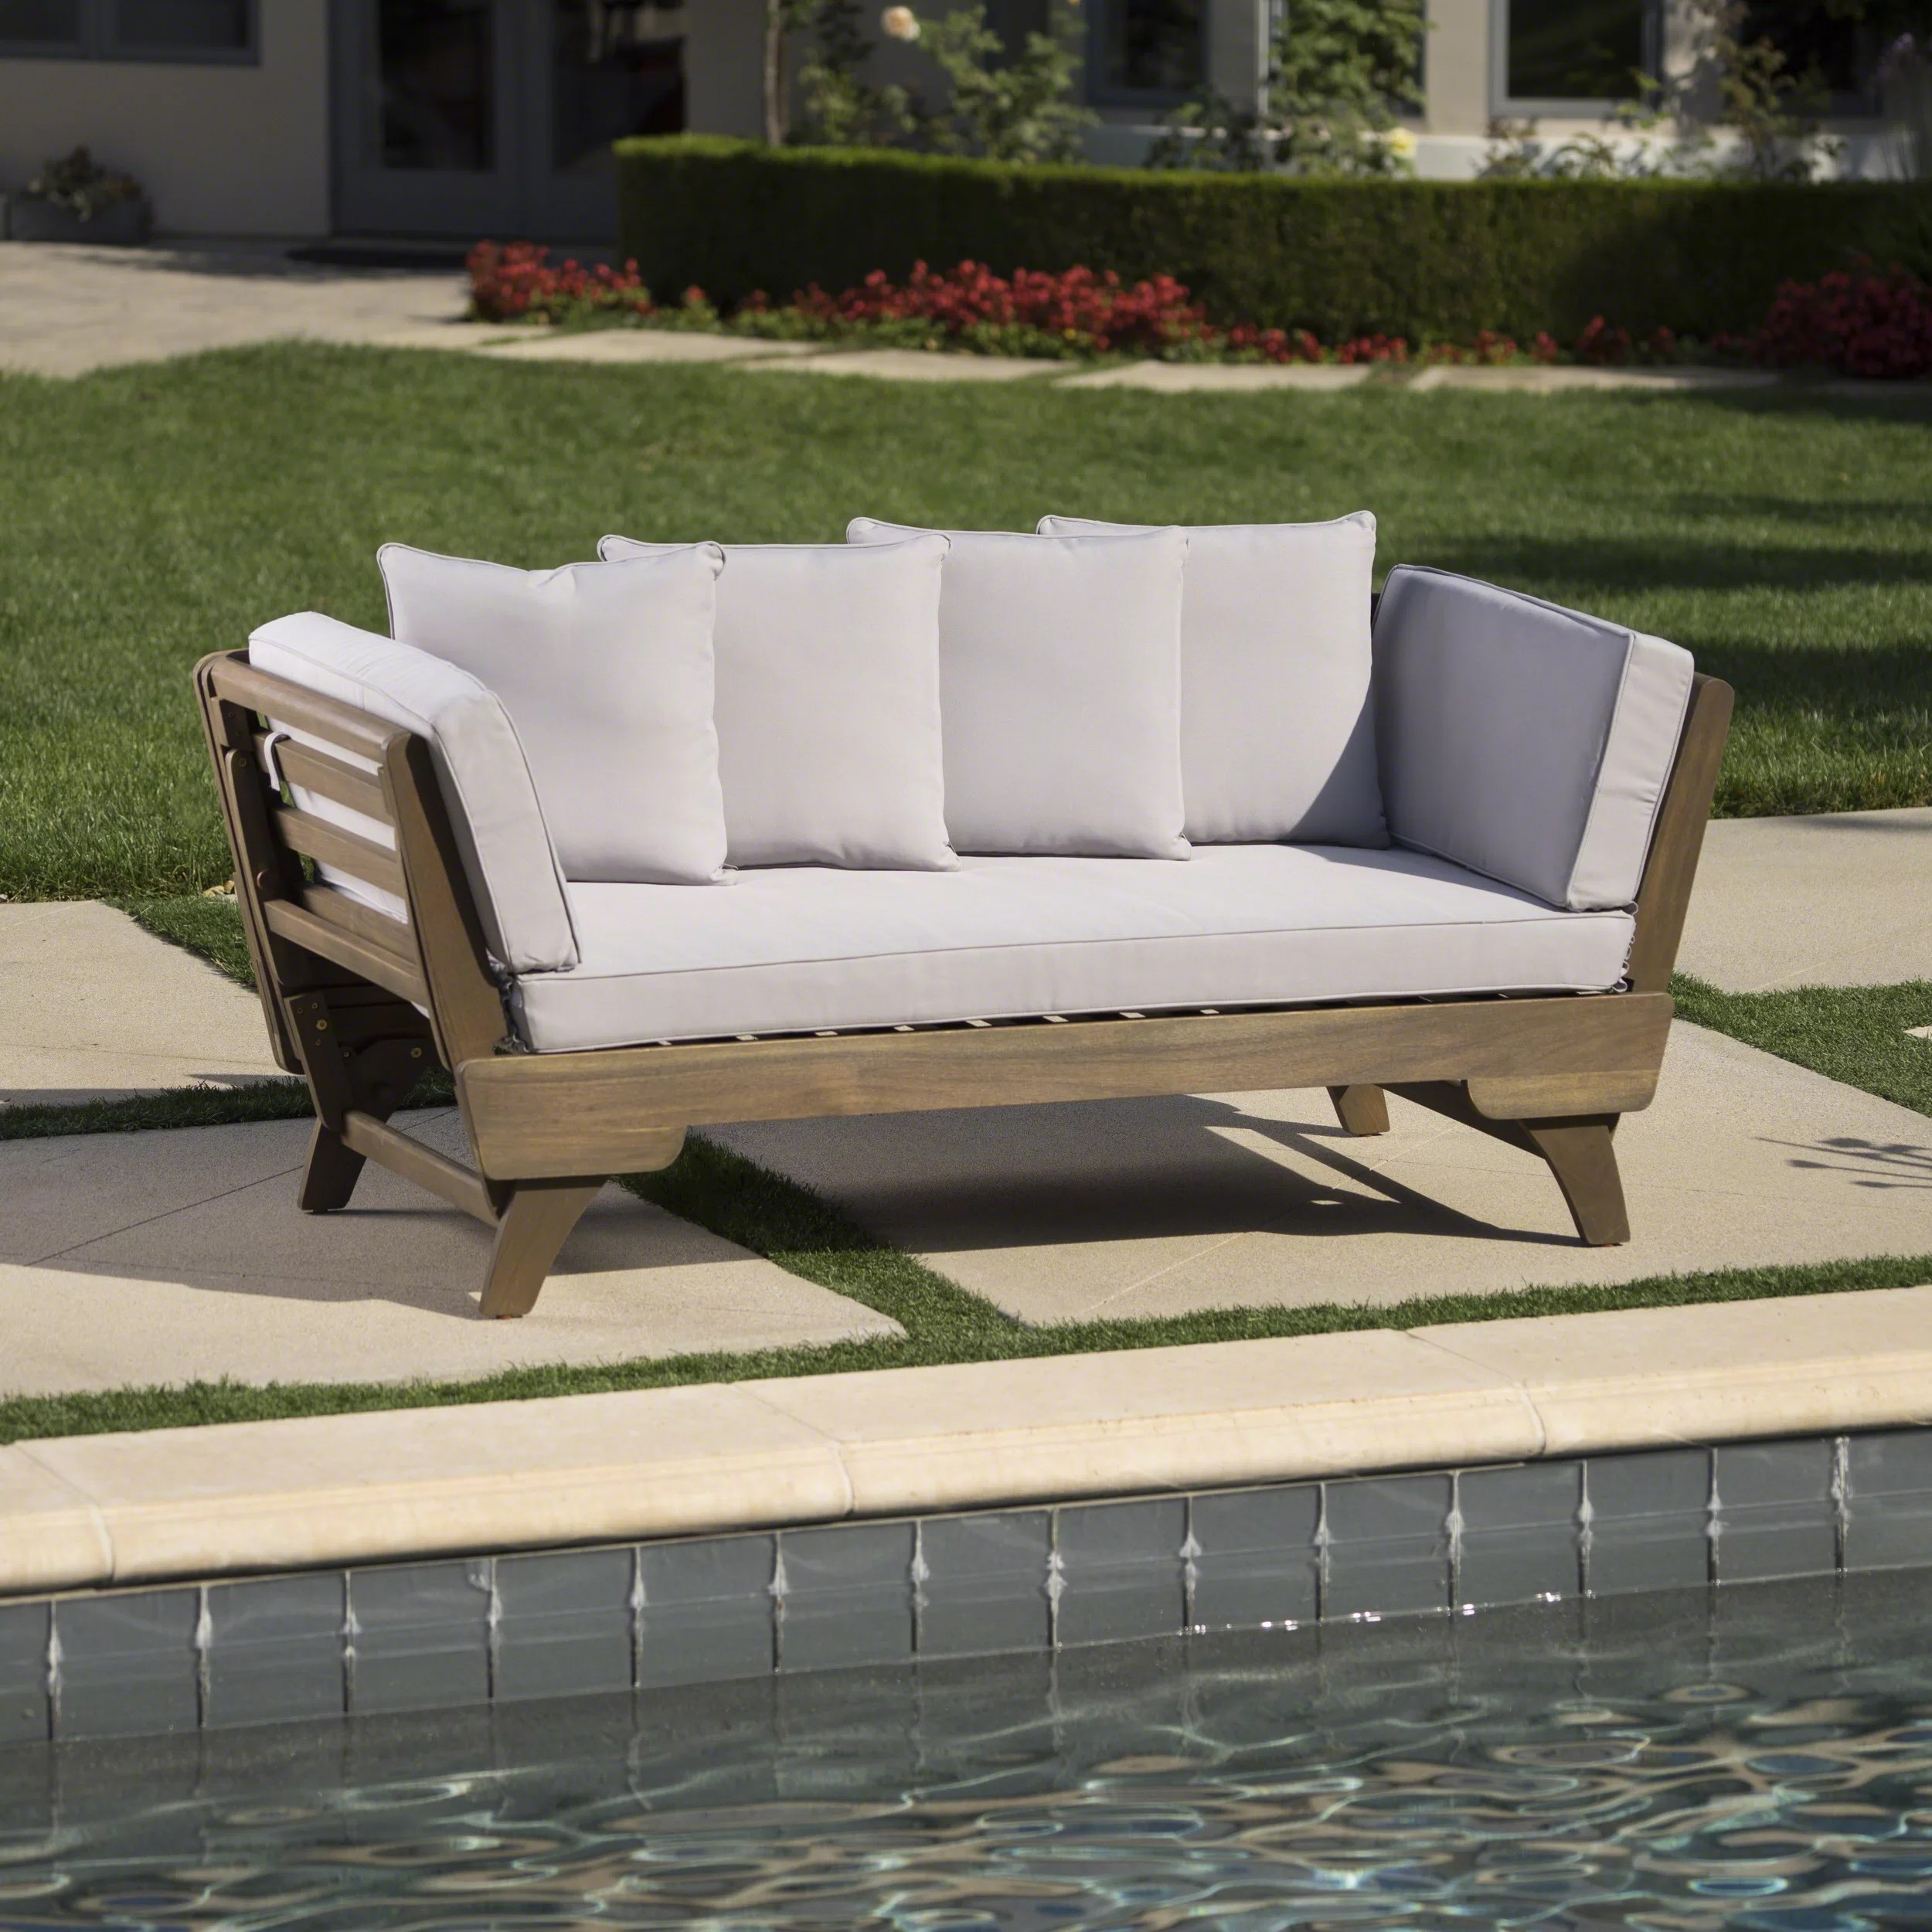 union rustic ellanti outdoor patio daybed with cushions reviews wayfair ca